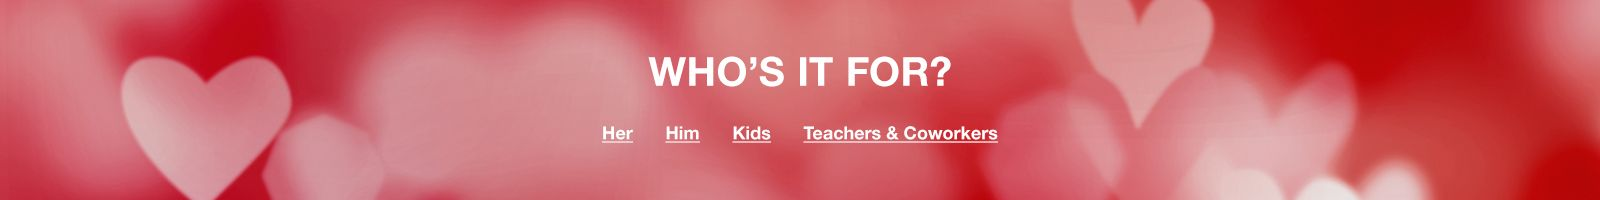 Who's It For, Her, Him, Kids, Teachers and Coworkers